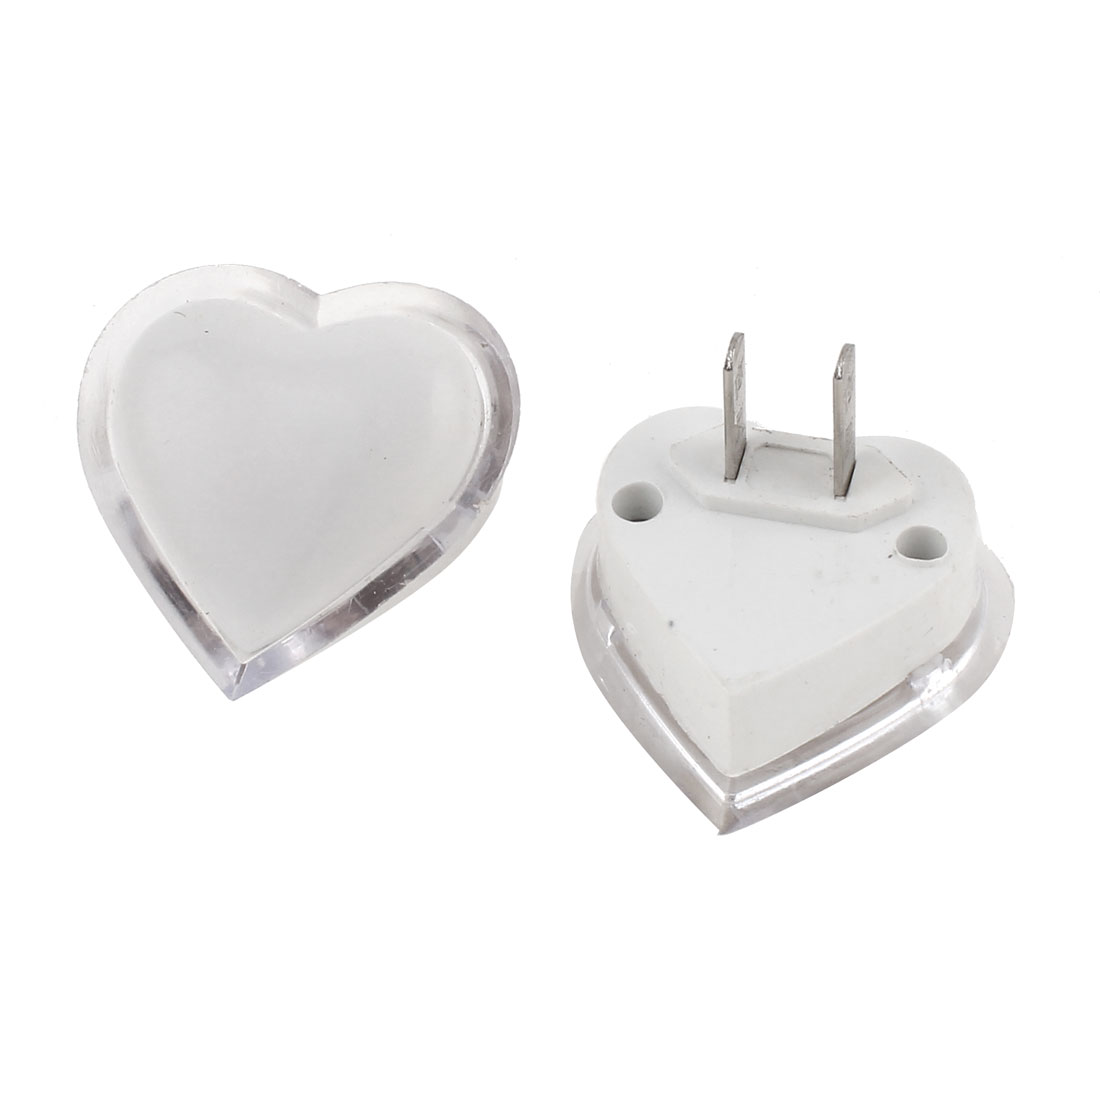 AC 120-250V 1W US Plug Heart Shaped Colorful LED Night Light Lamp 2 Pcs